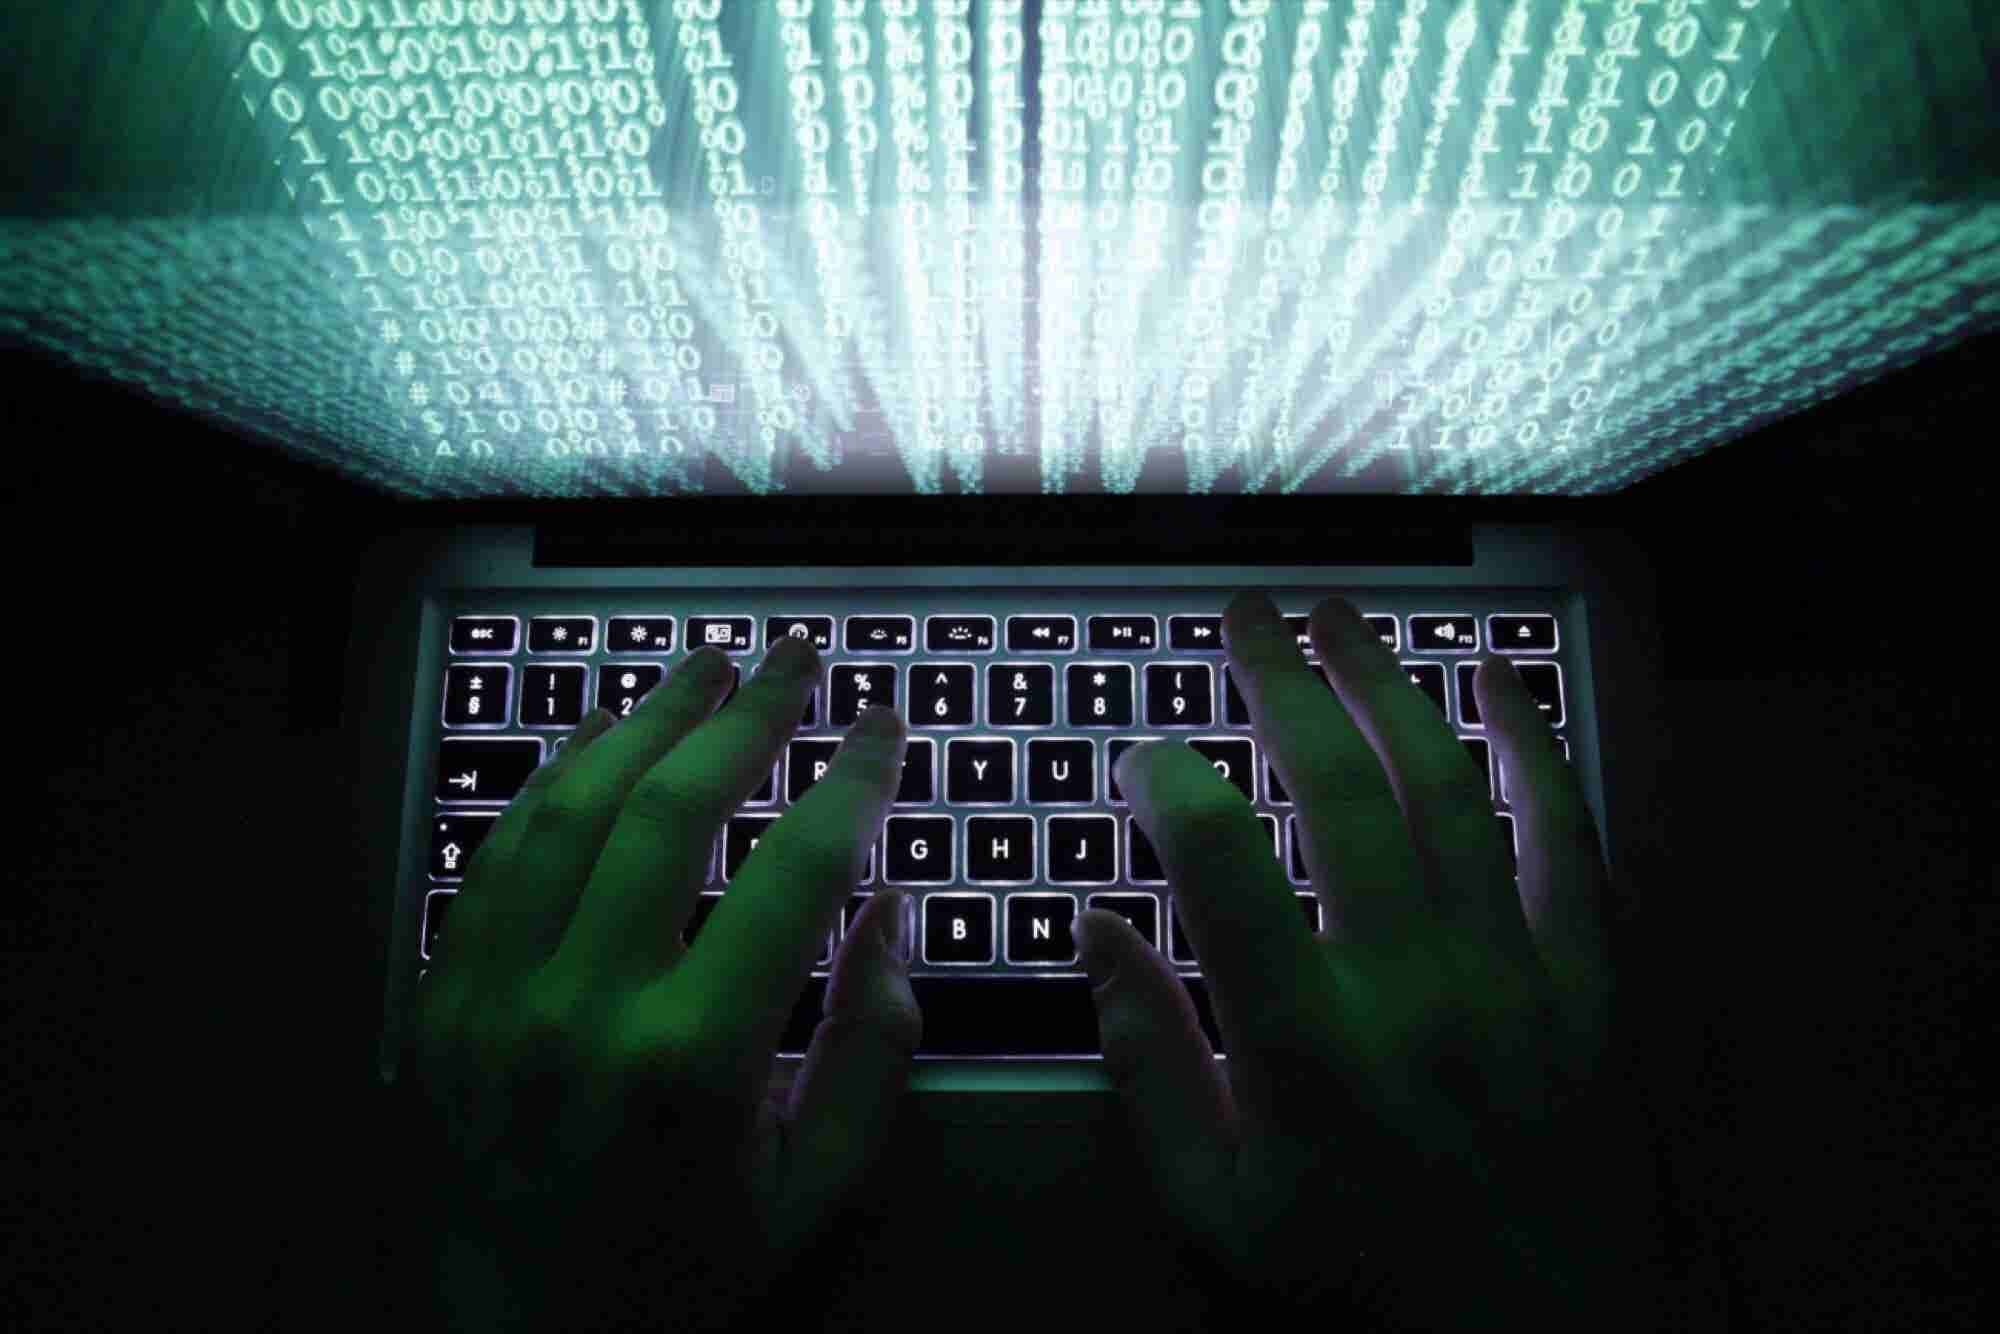 Cyber Criminals Snap Up Expired Domains to Serve Malicious Ads